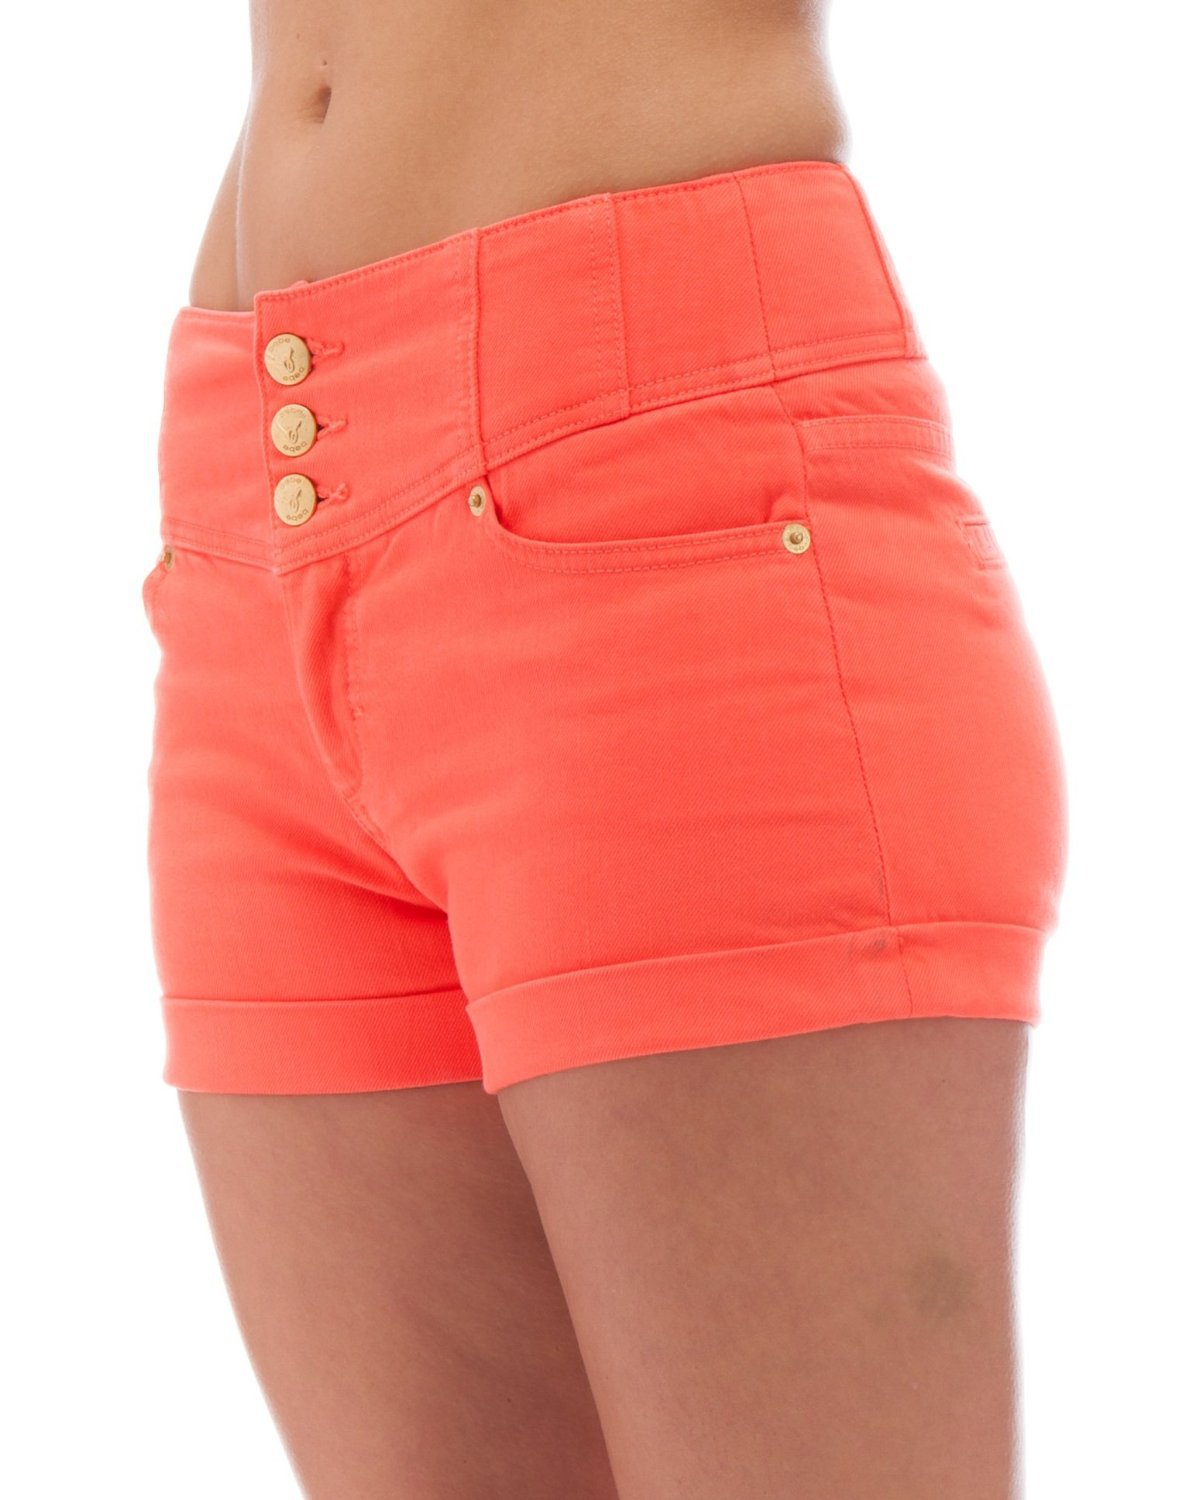 Find great deals on eBay for cute shorts. Shop with confidence.